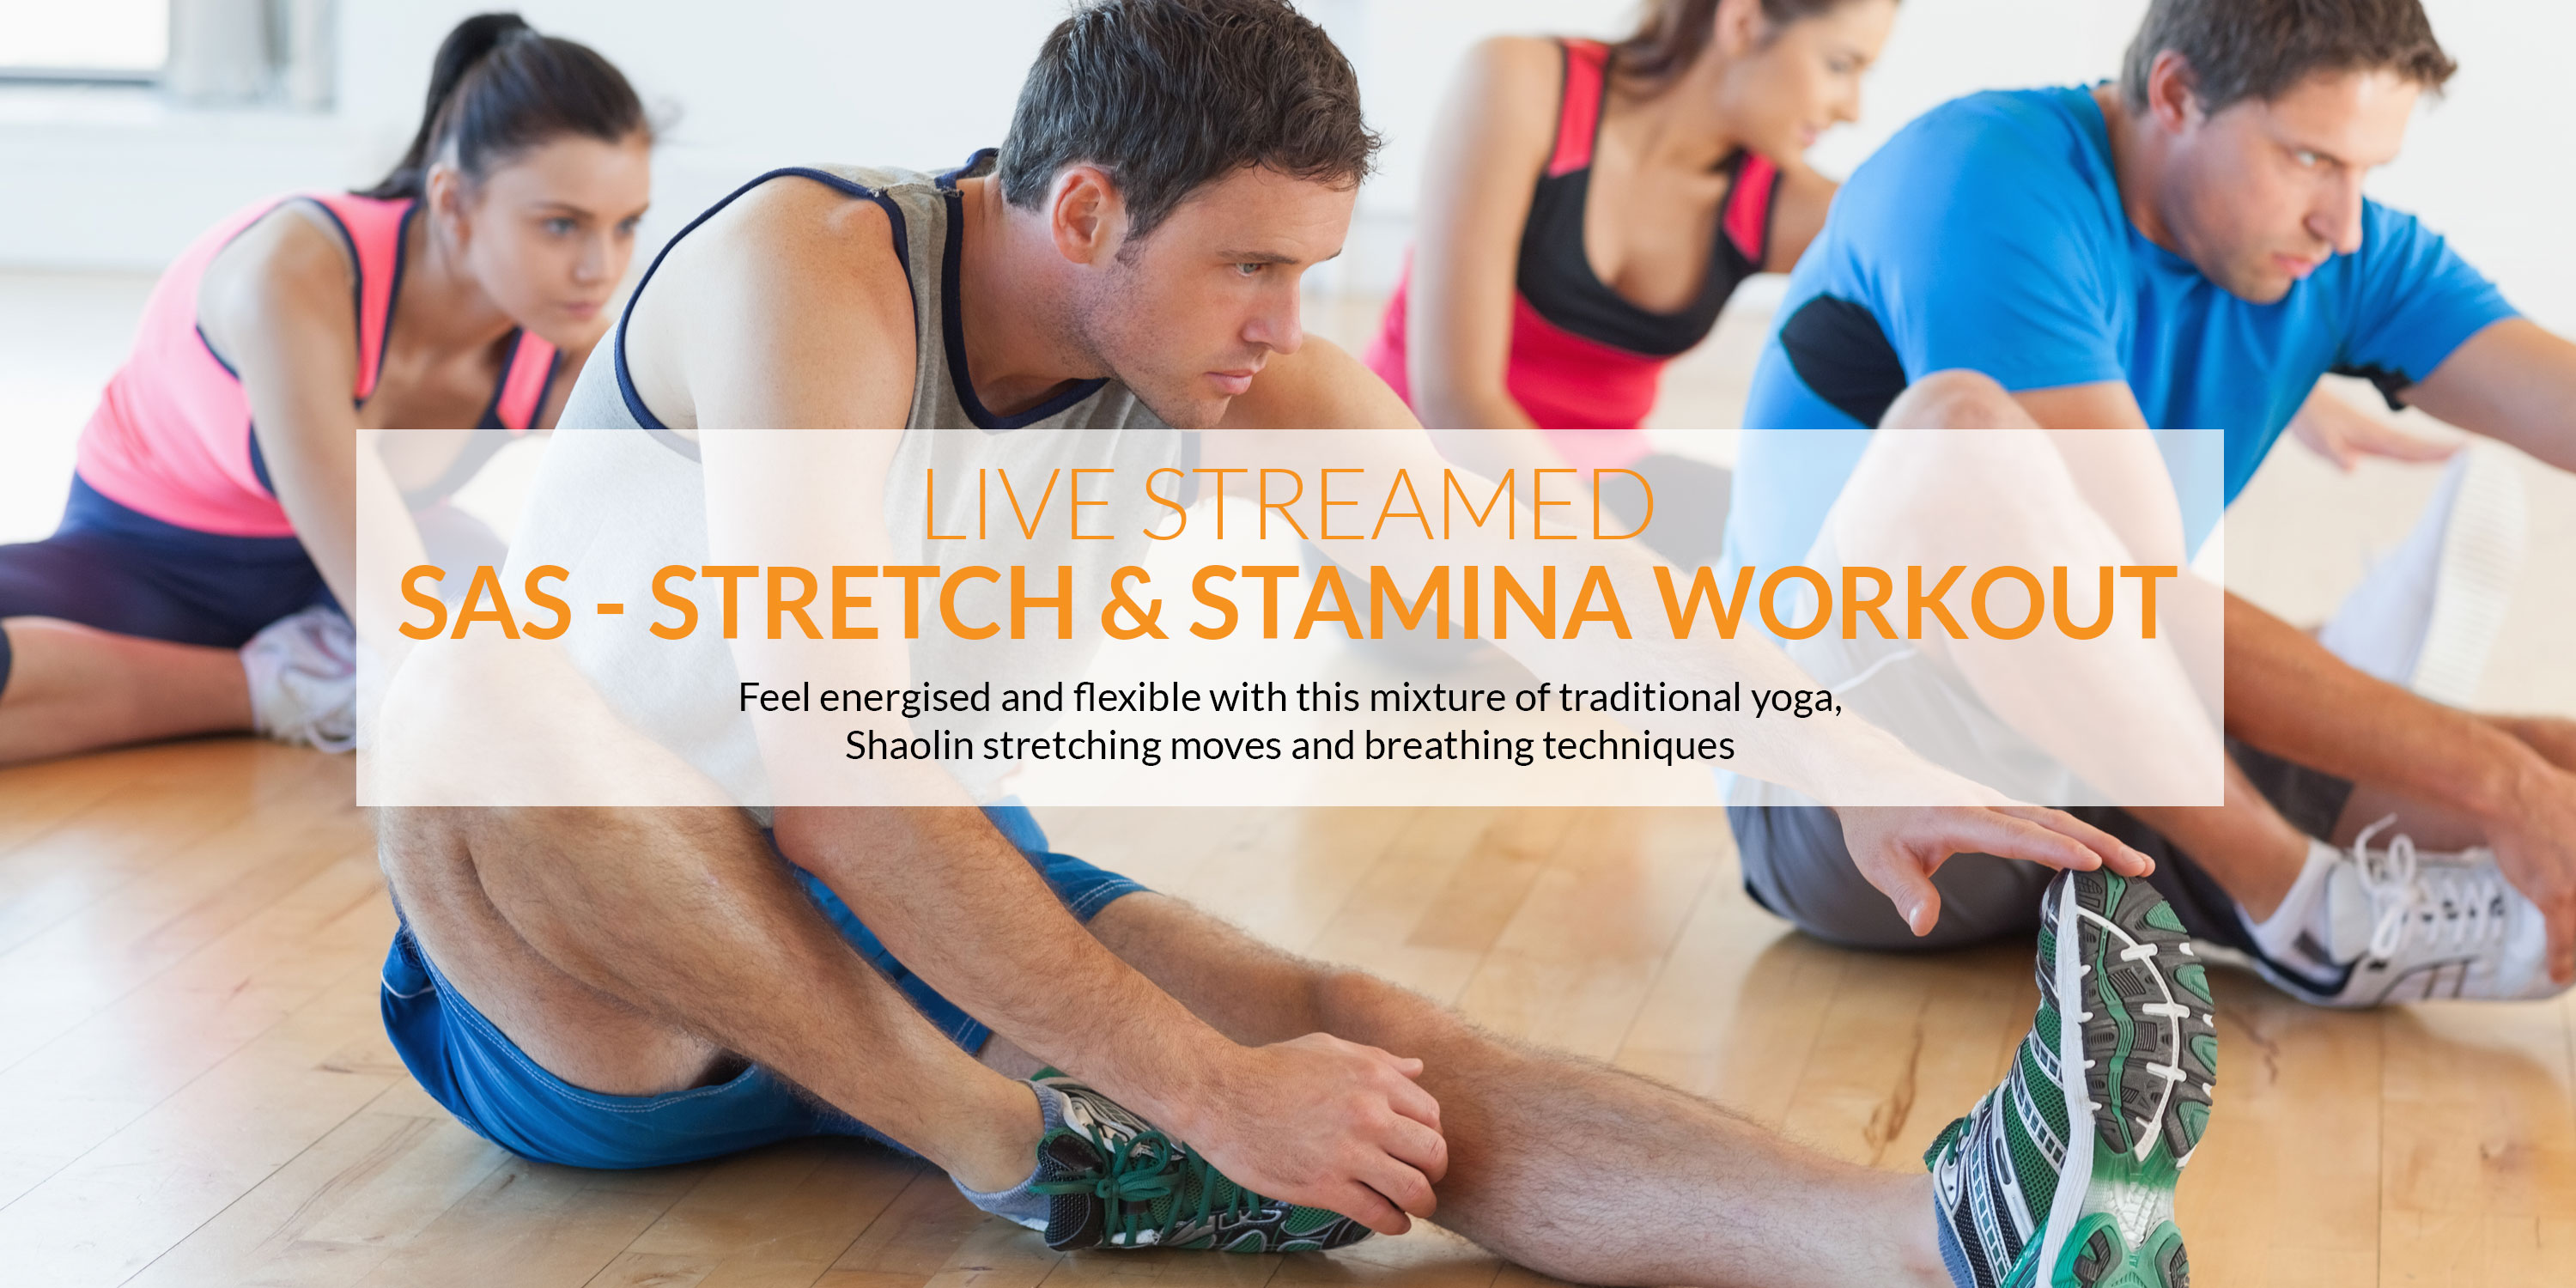 The best SAS – Stretch and Stamina Workout live-streamed